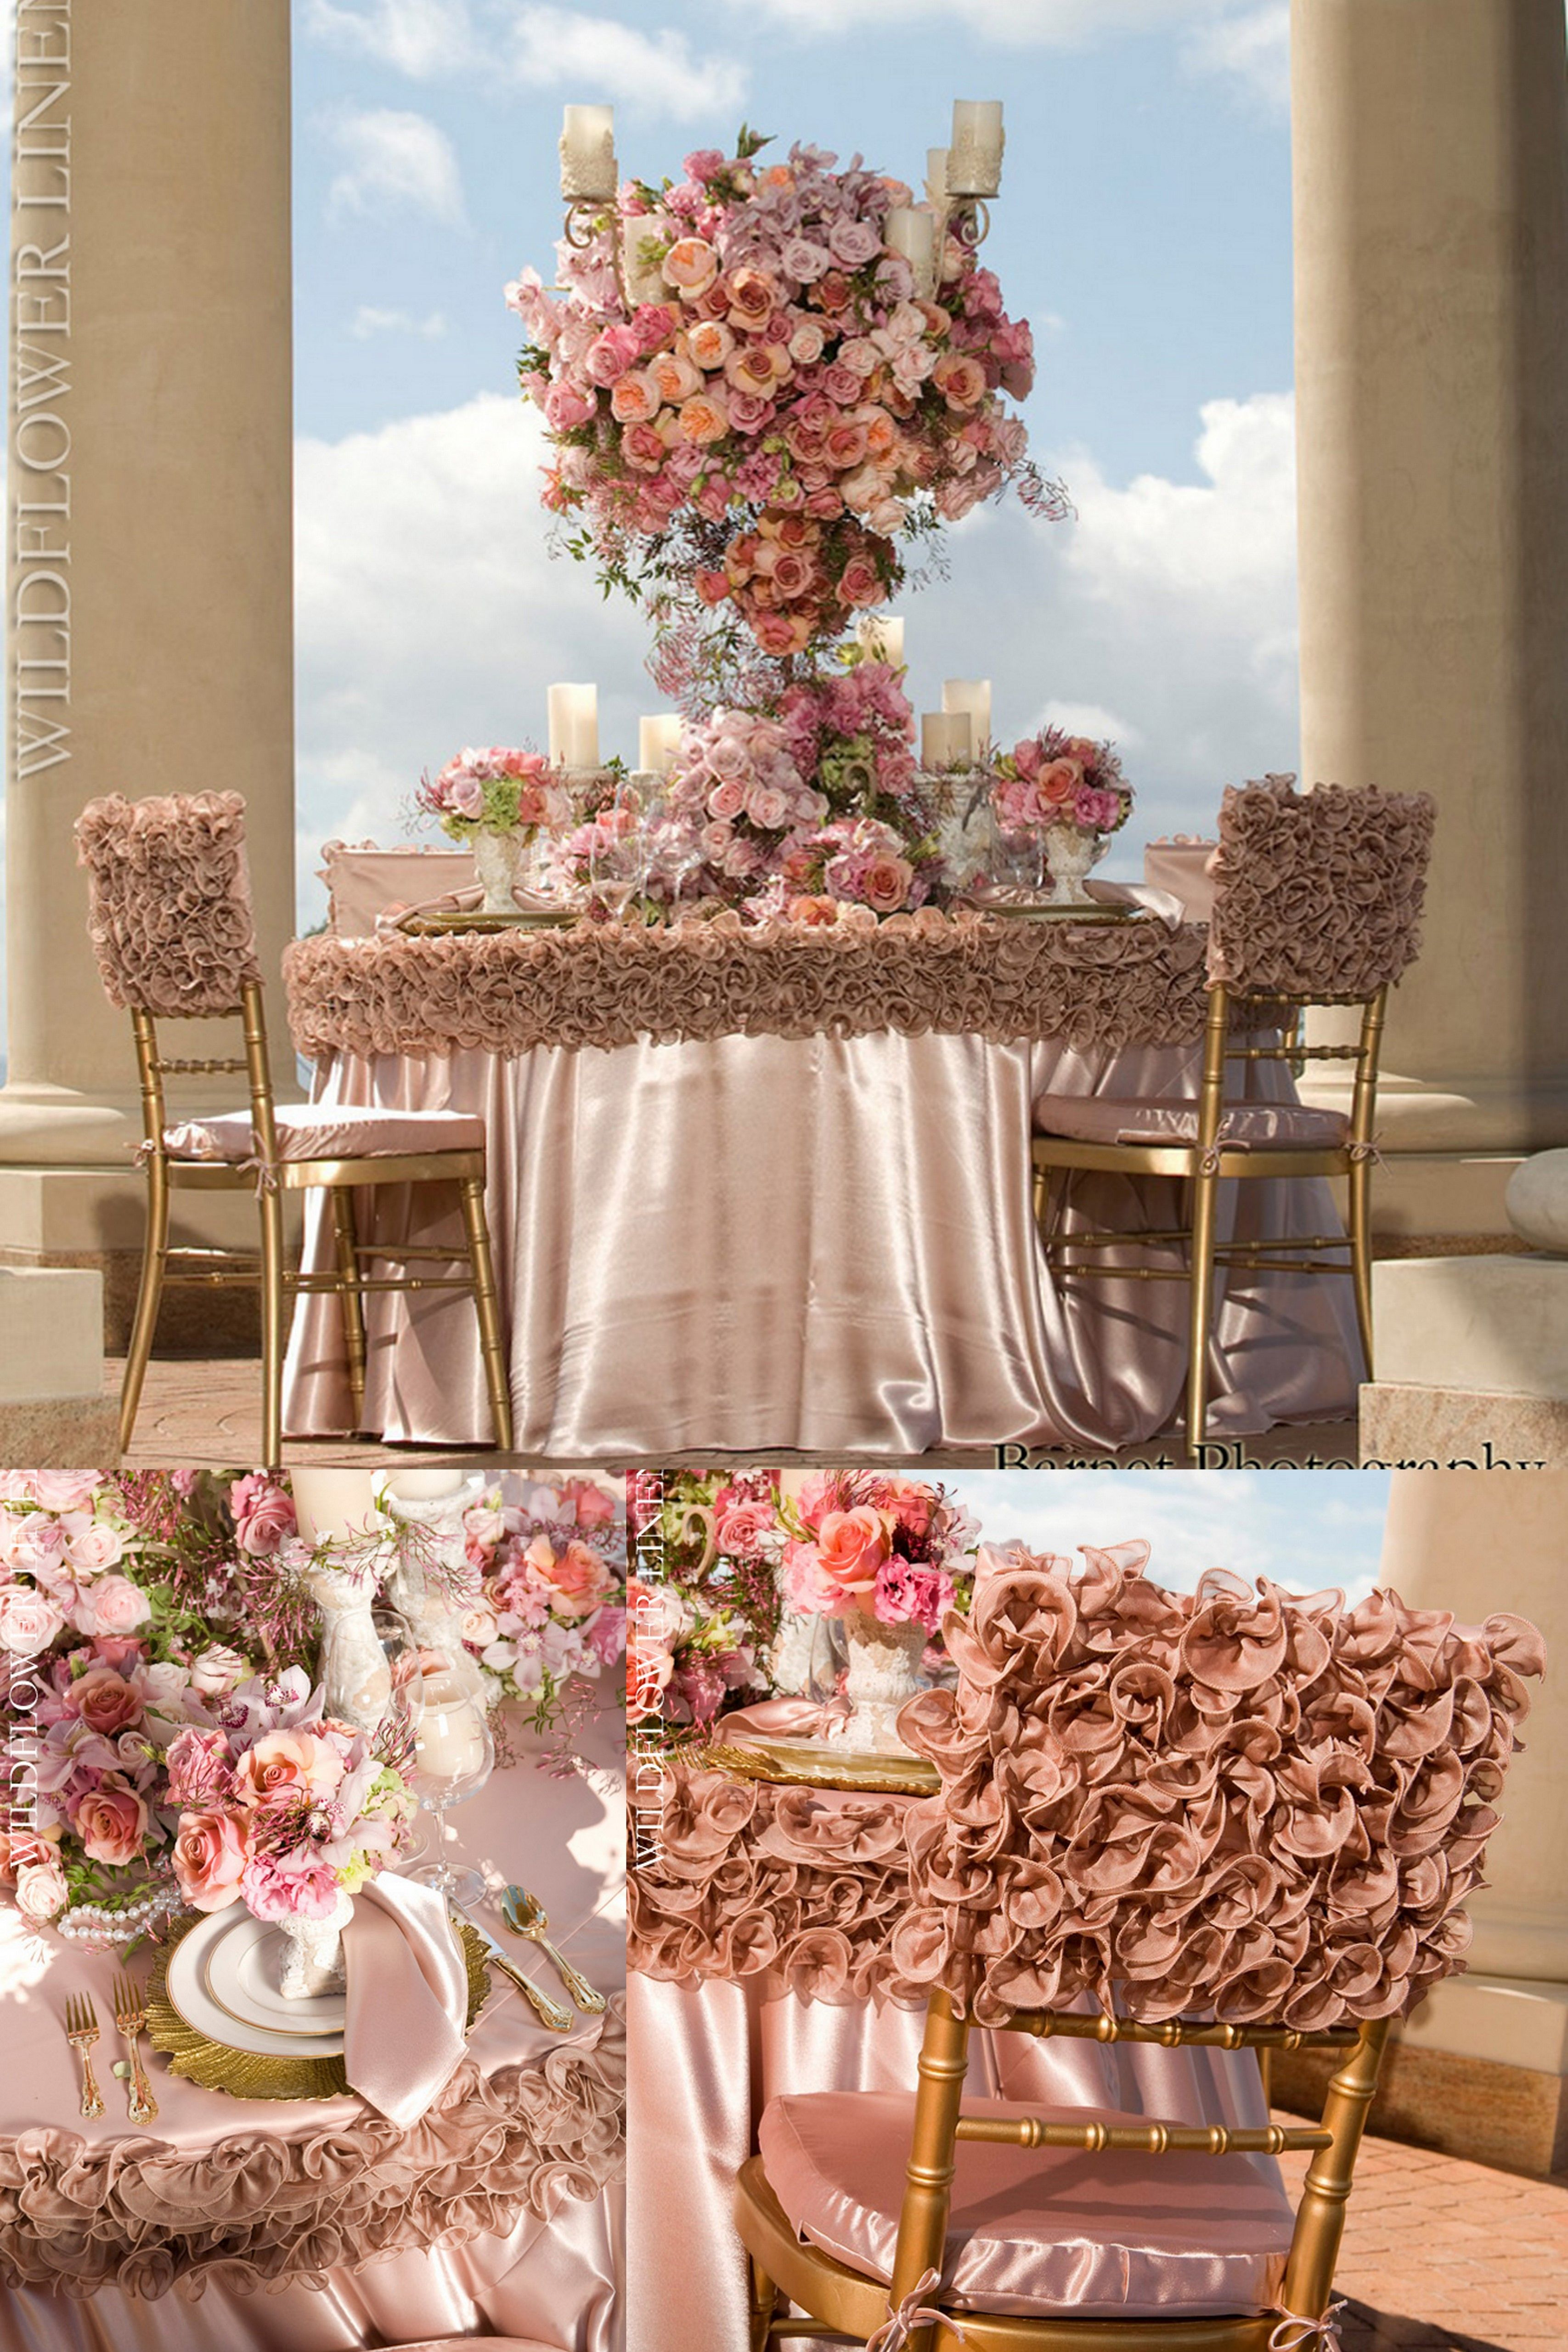 diy wedding chair covers pinterest retro white frilly pink linens the banding effect is a